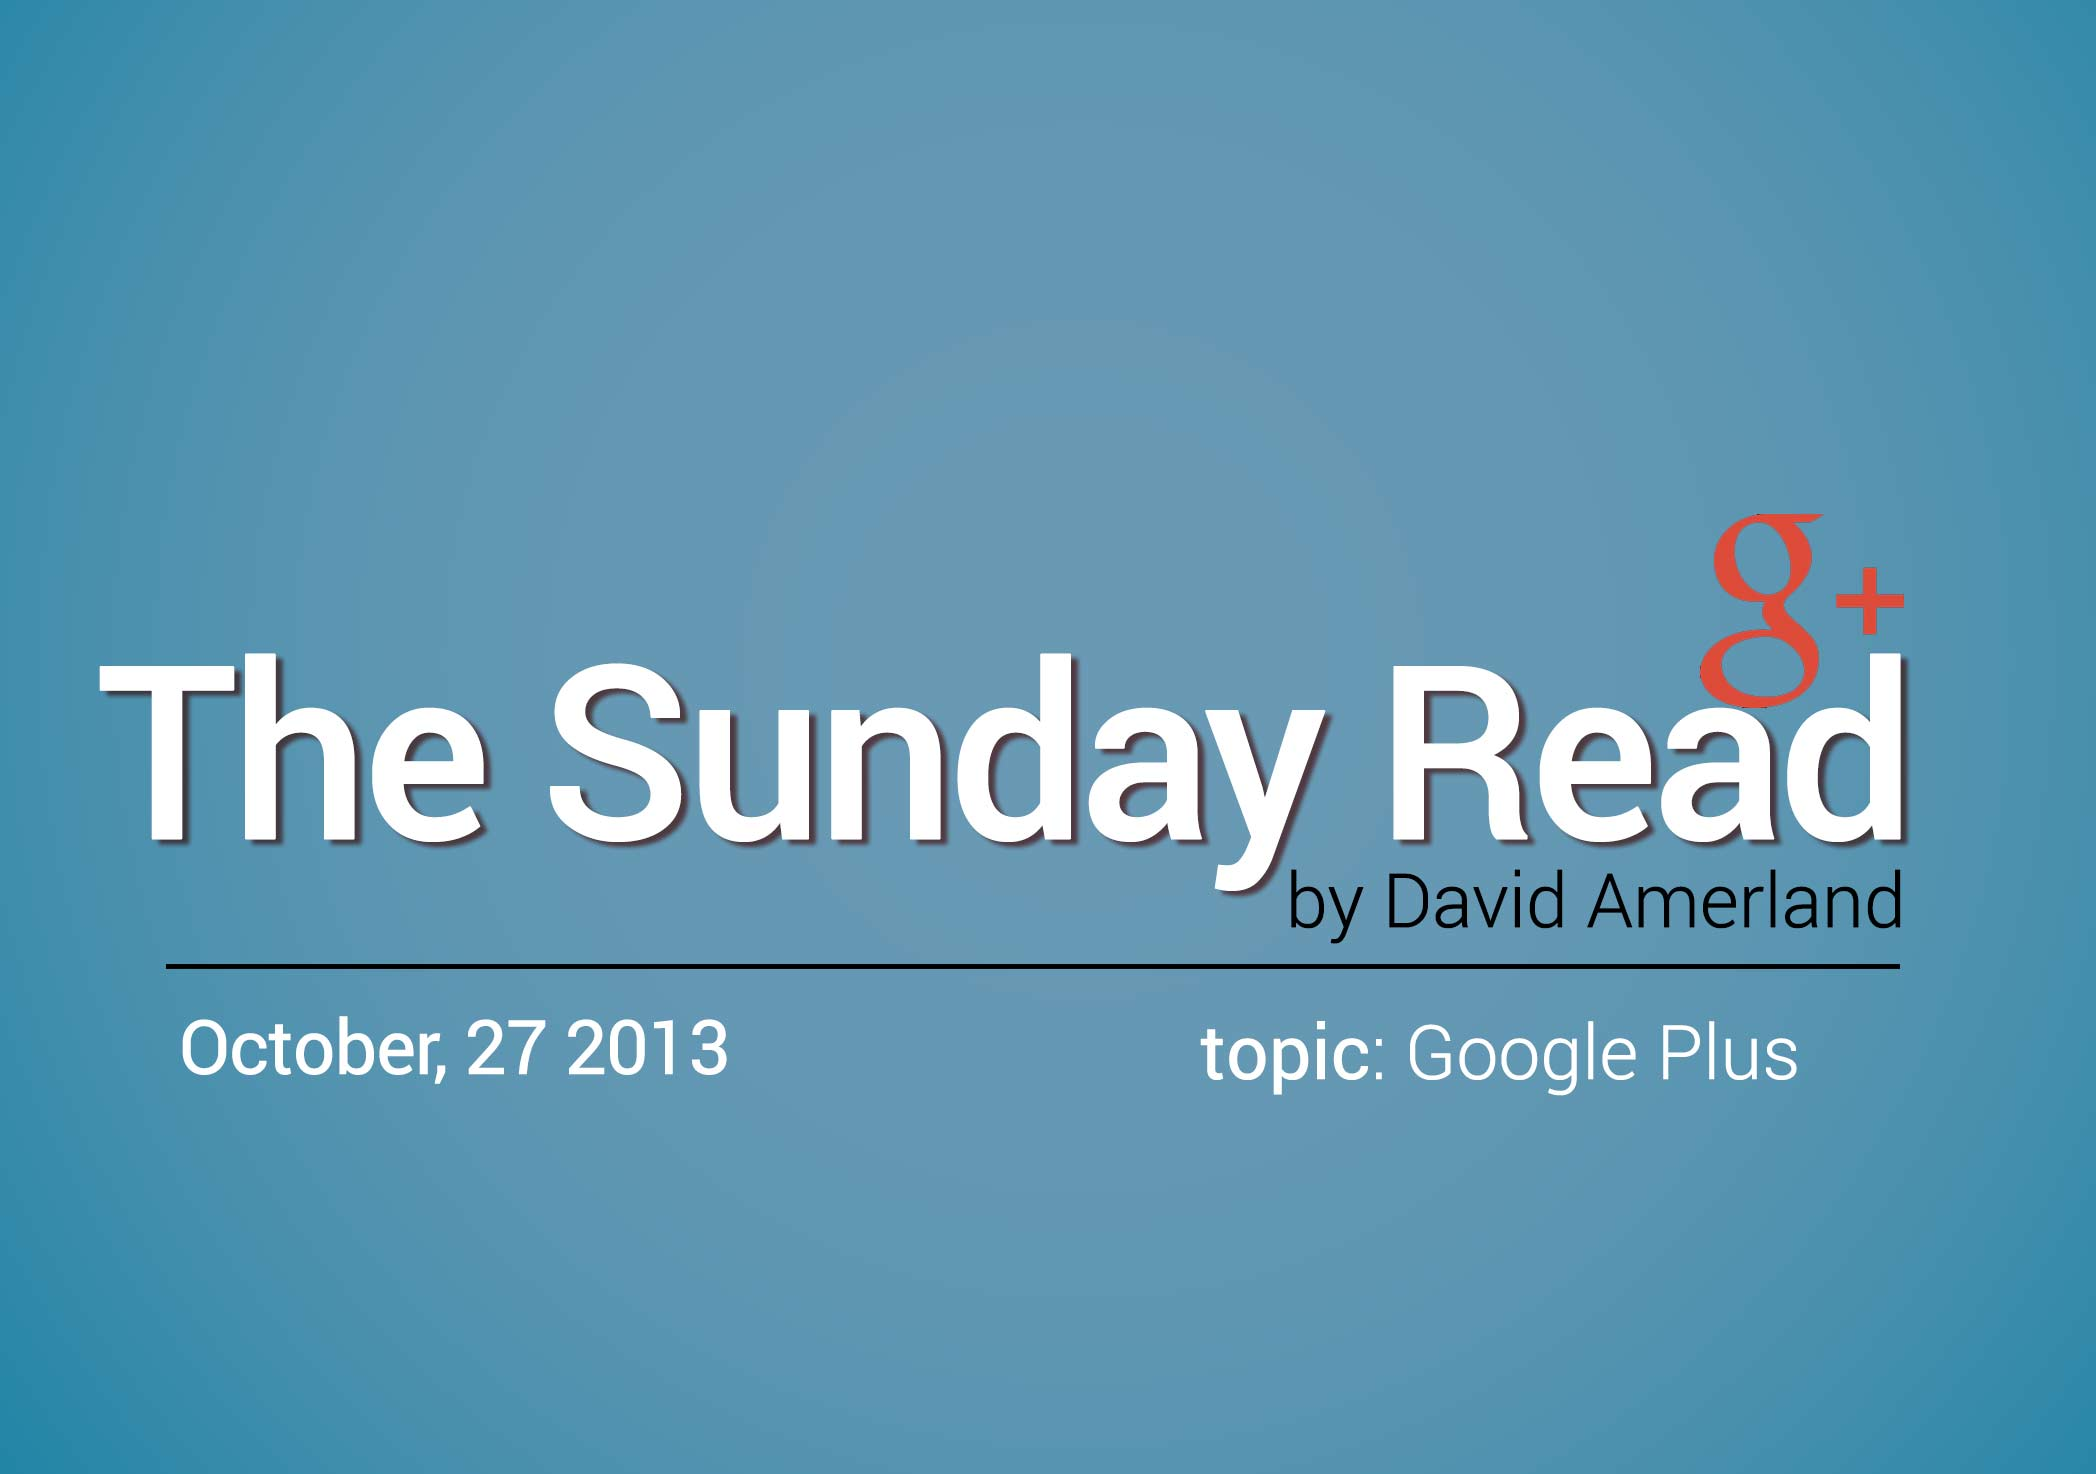 Google plus is the The Sunday Read